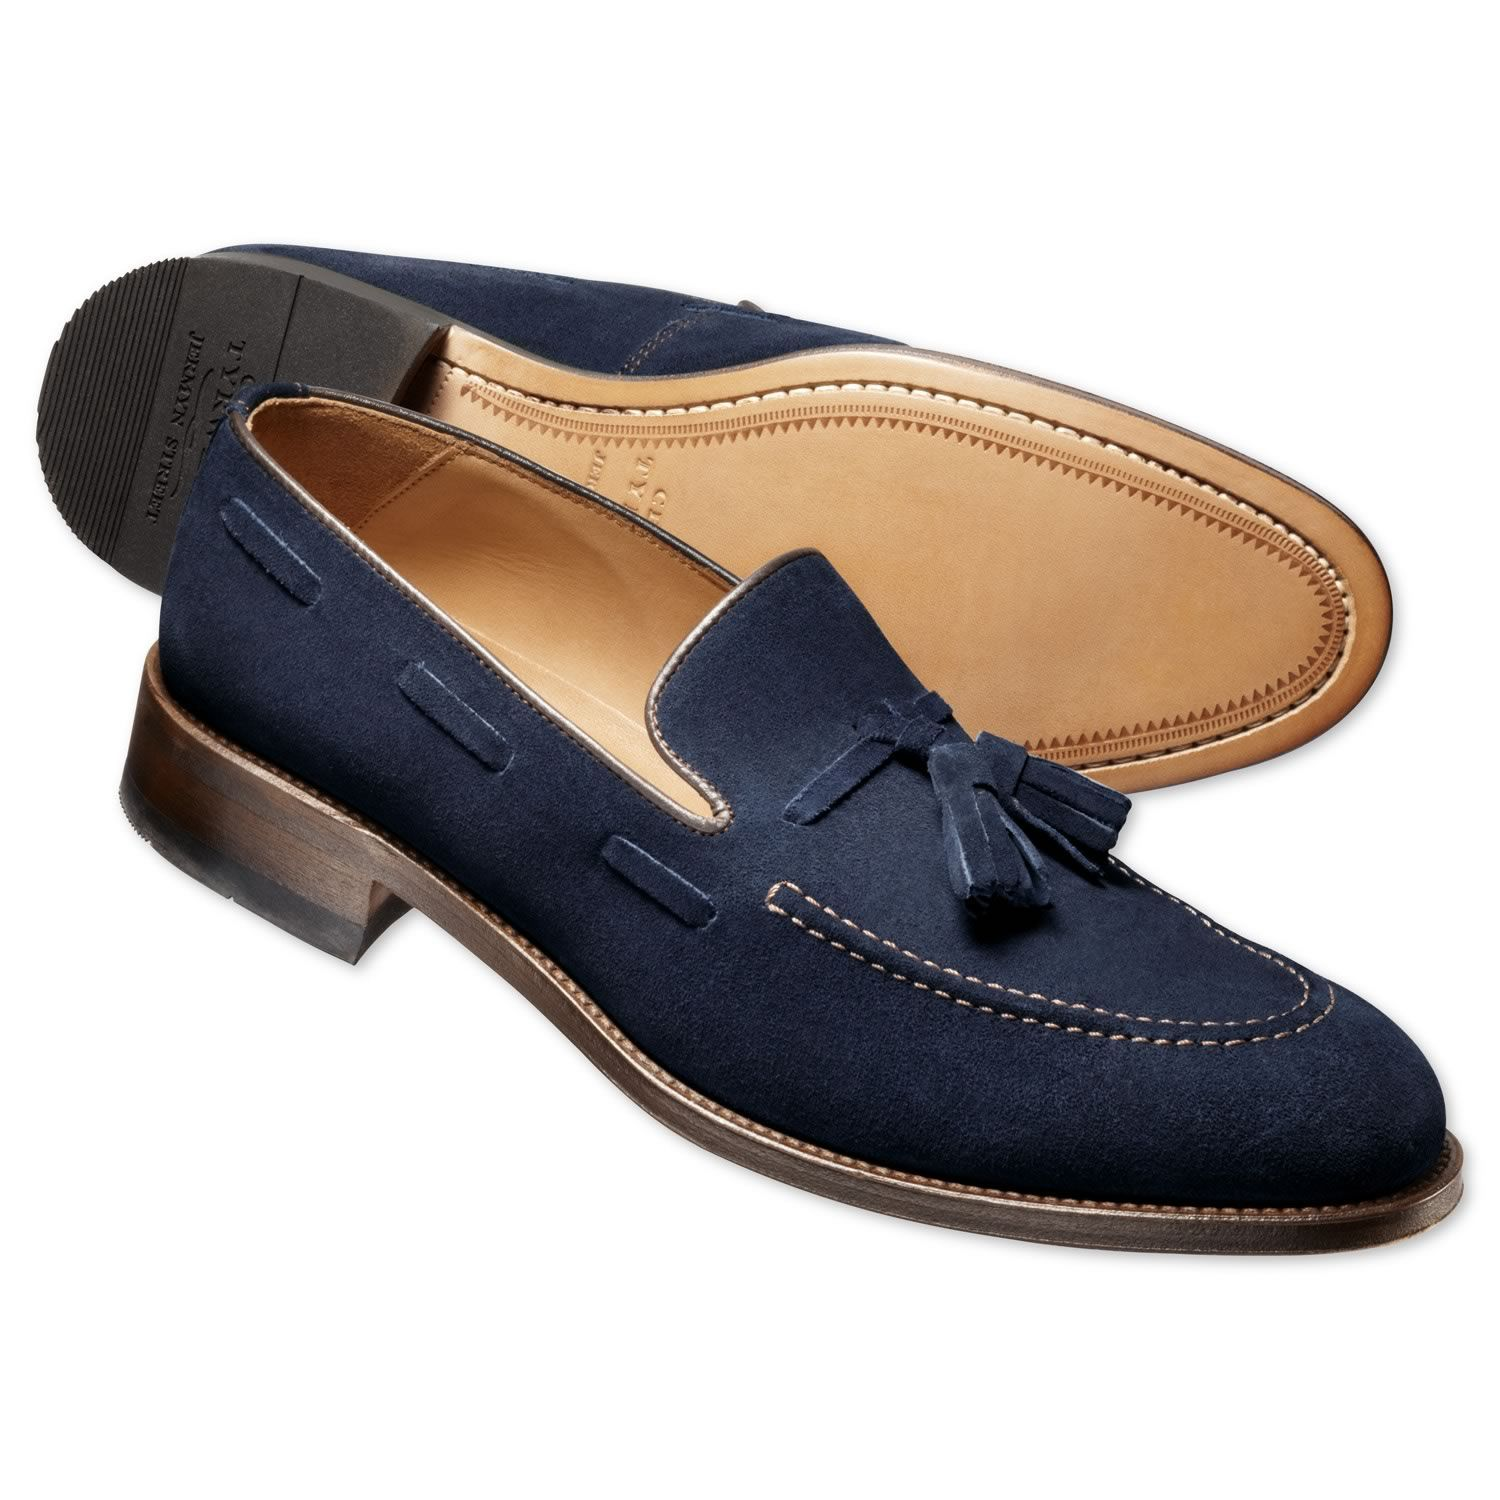 2874d03adca Navy suede tassel loafers